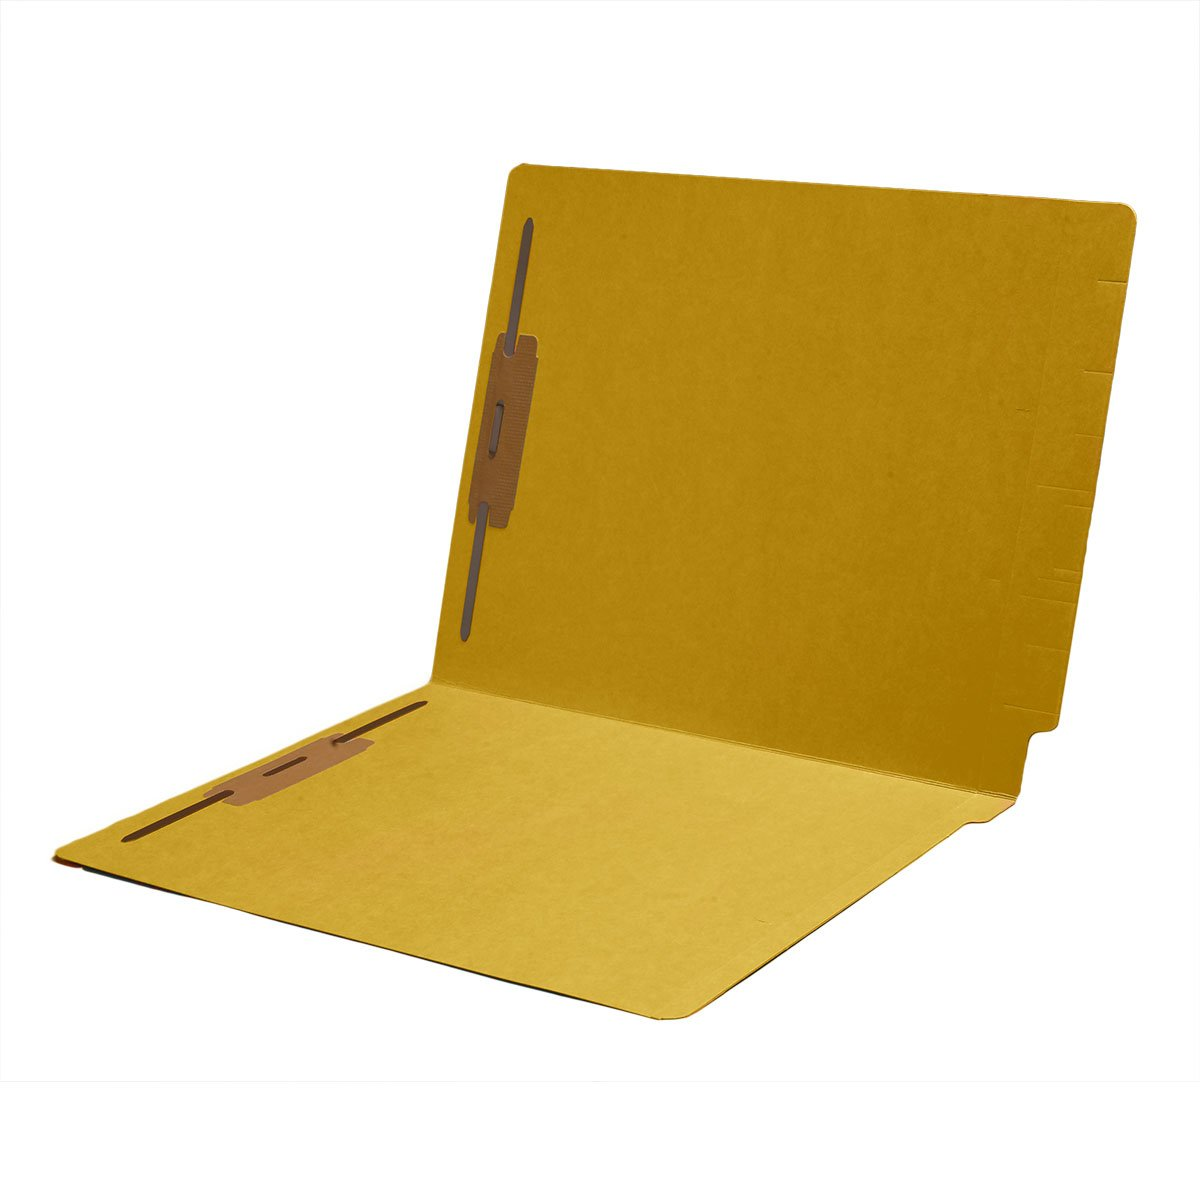 11 pt Color Folders, Full Cut 2-Ply End Tab, Letter Size, Fastener Pos #1 & #3, Yellow (Carton of 250)